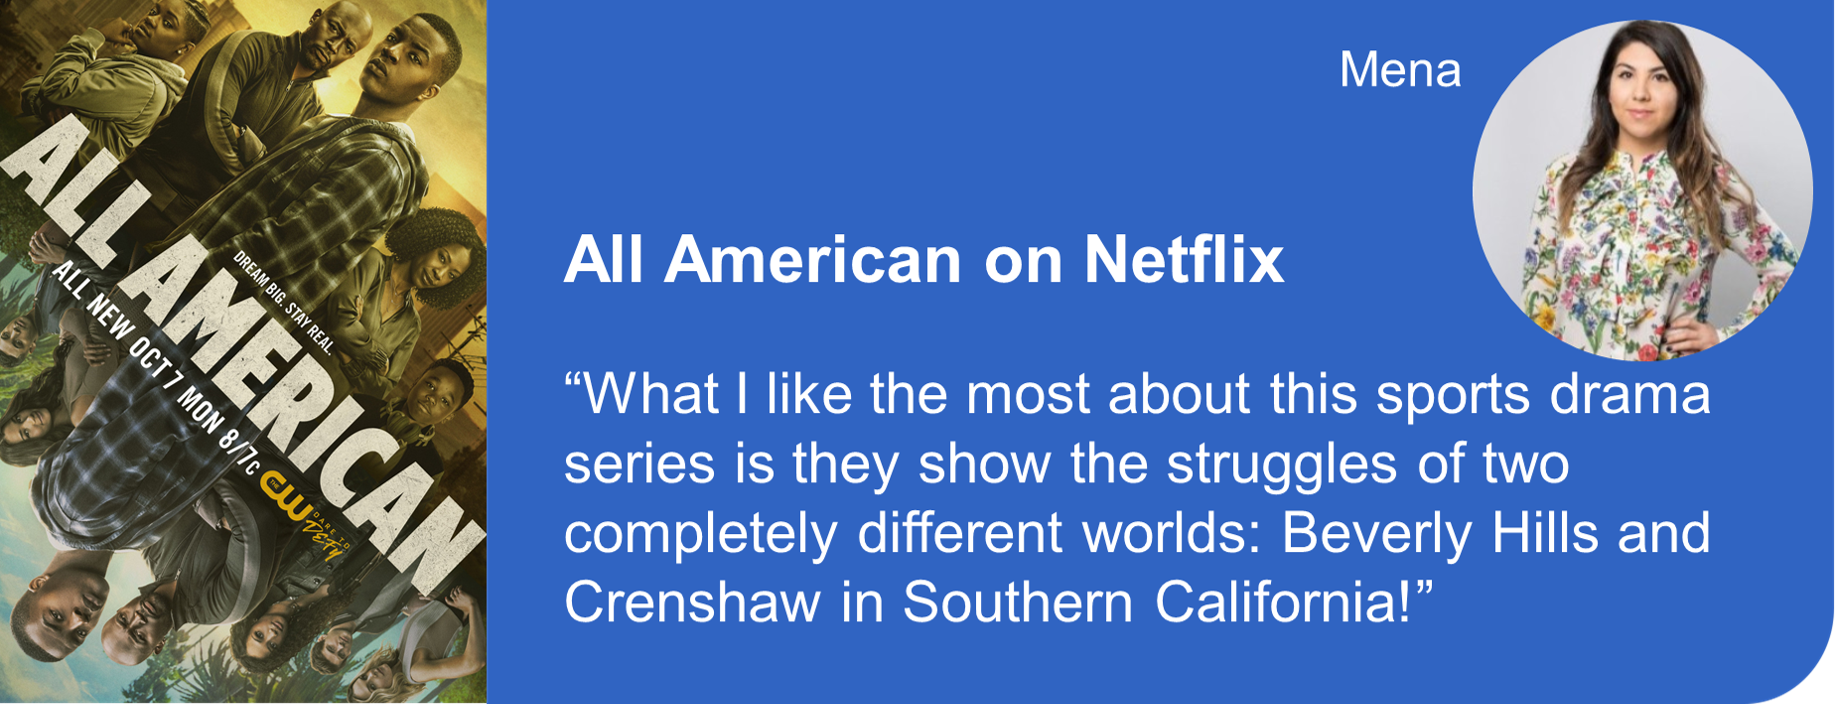 Creative Marketing Concepts Quarantine And Chill Binge-Worthy All American Netflix